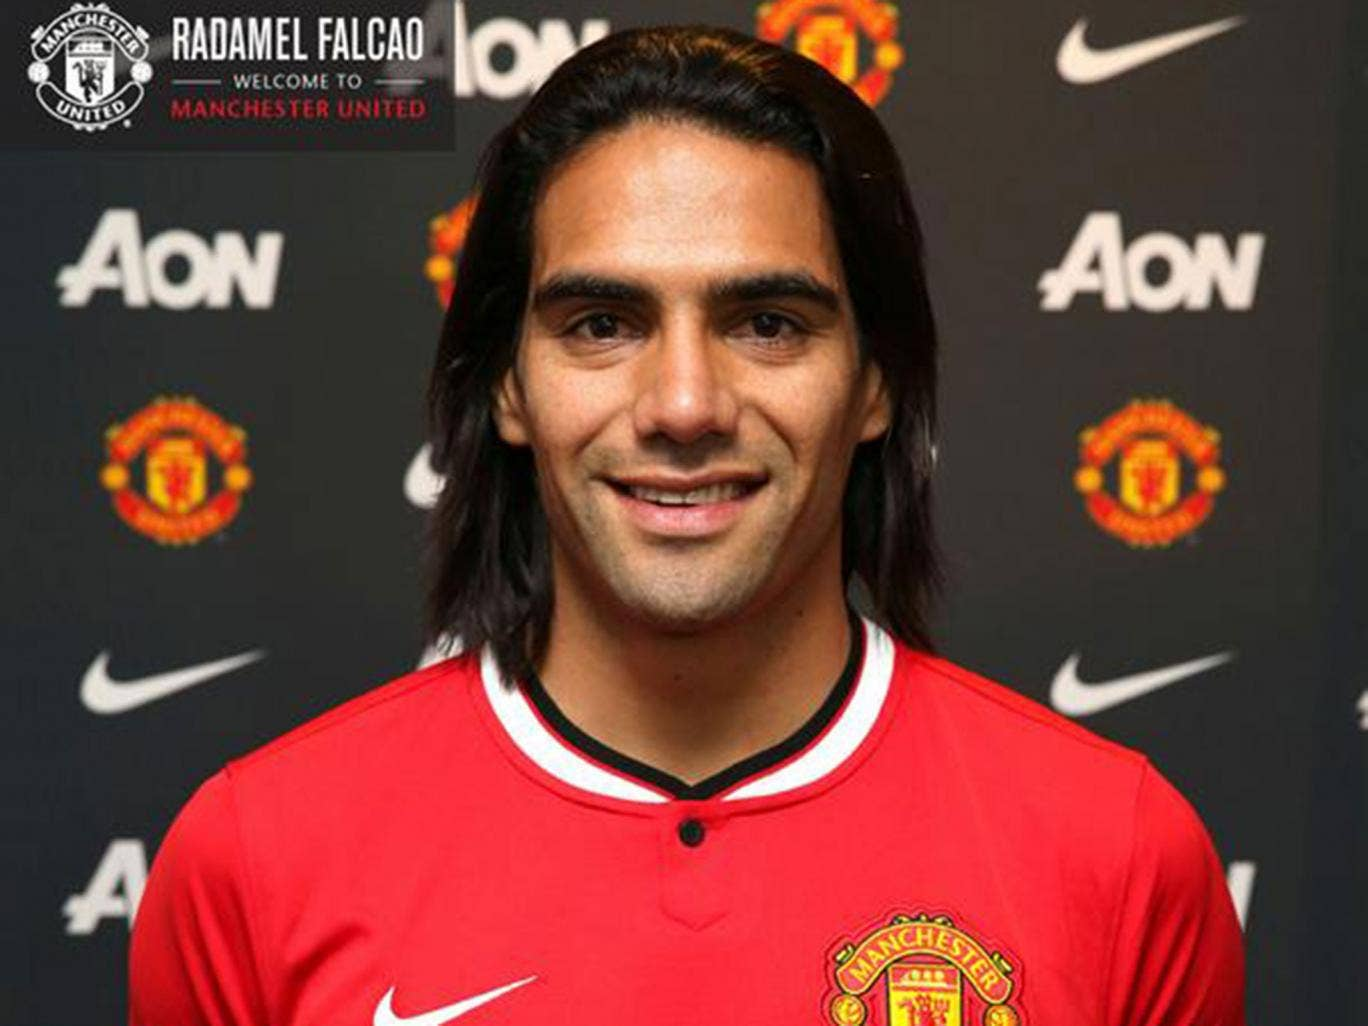 Radamel Falcao is presented as a Manchester United player